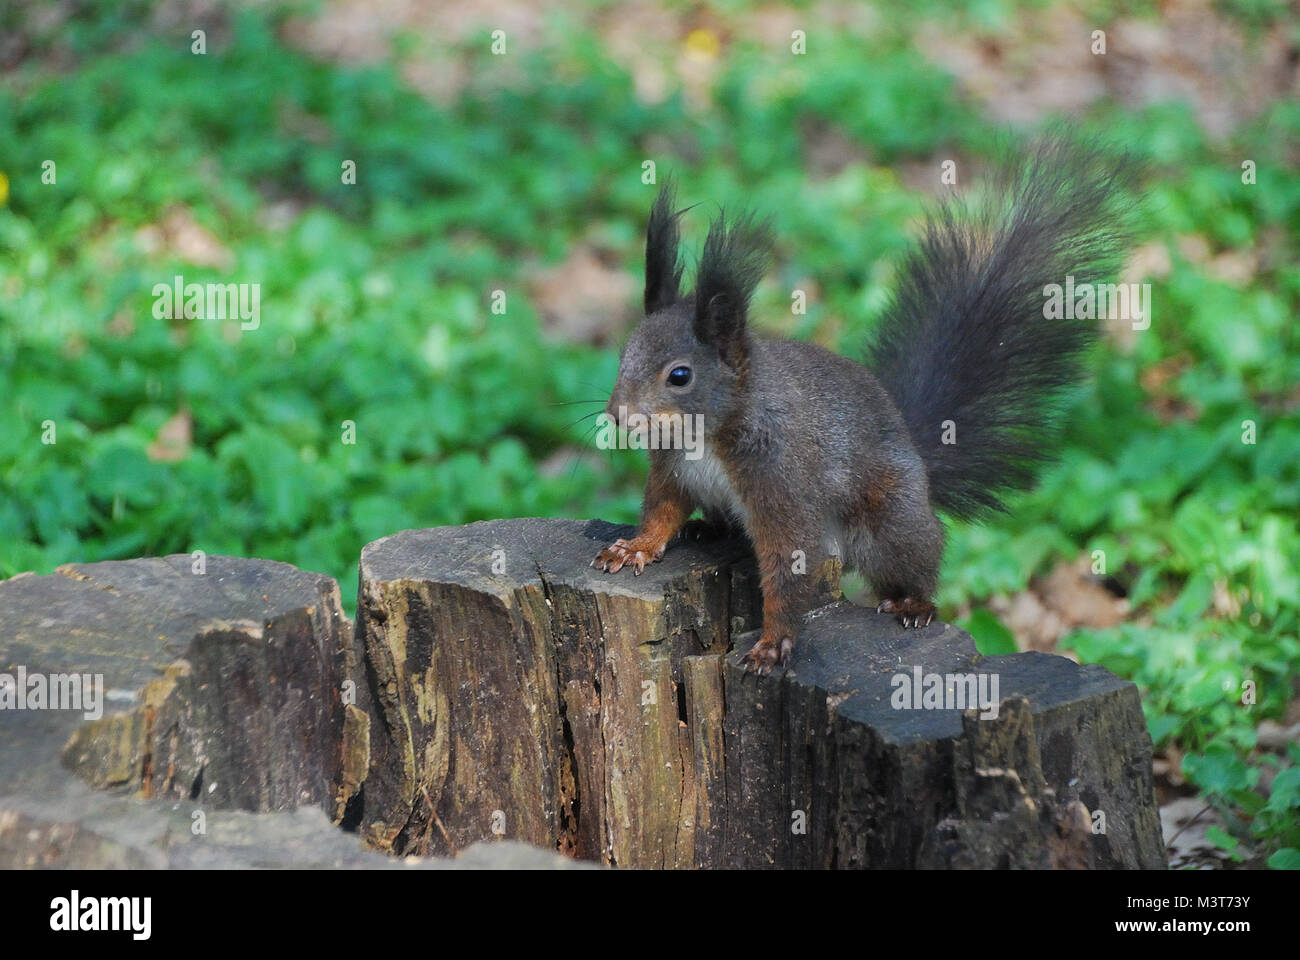 little squirrel sitting on a tree stump - Stock Image